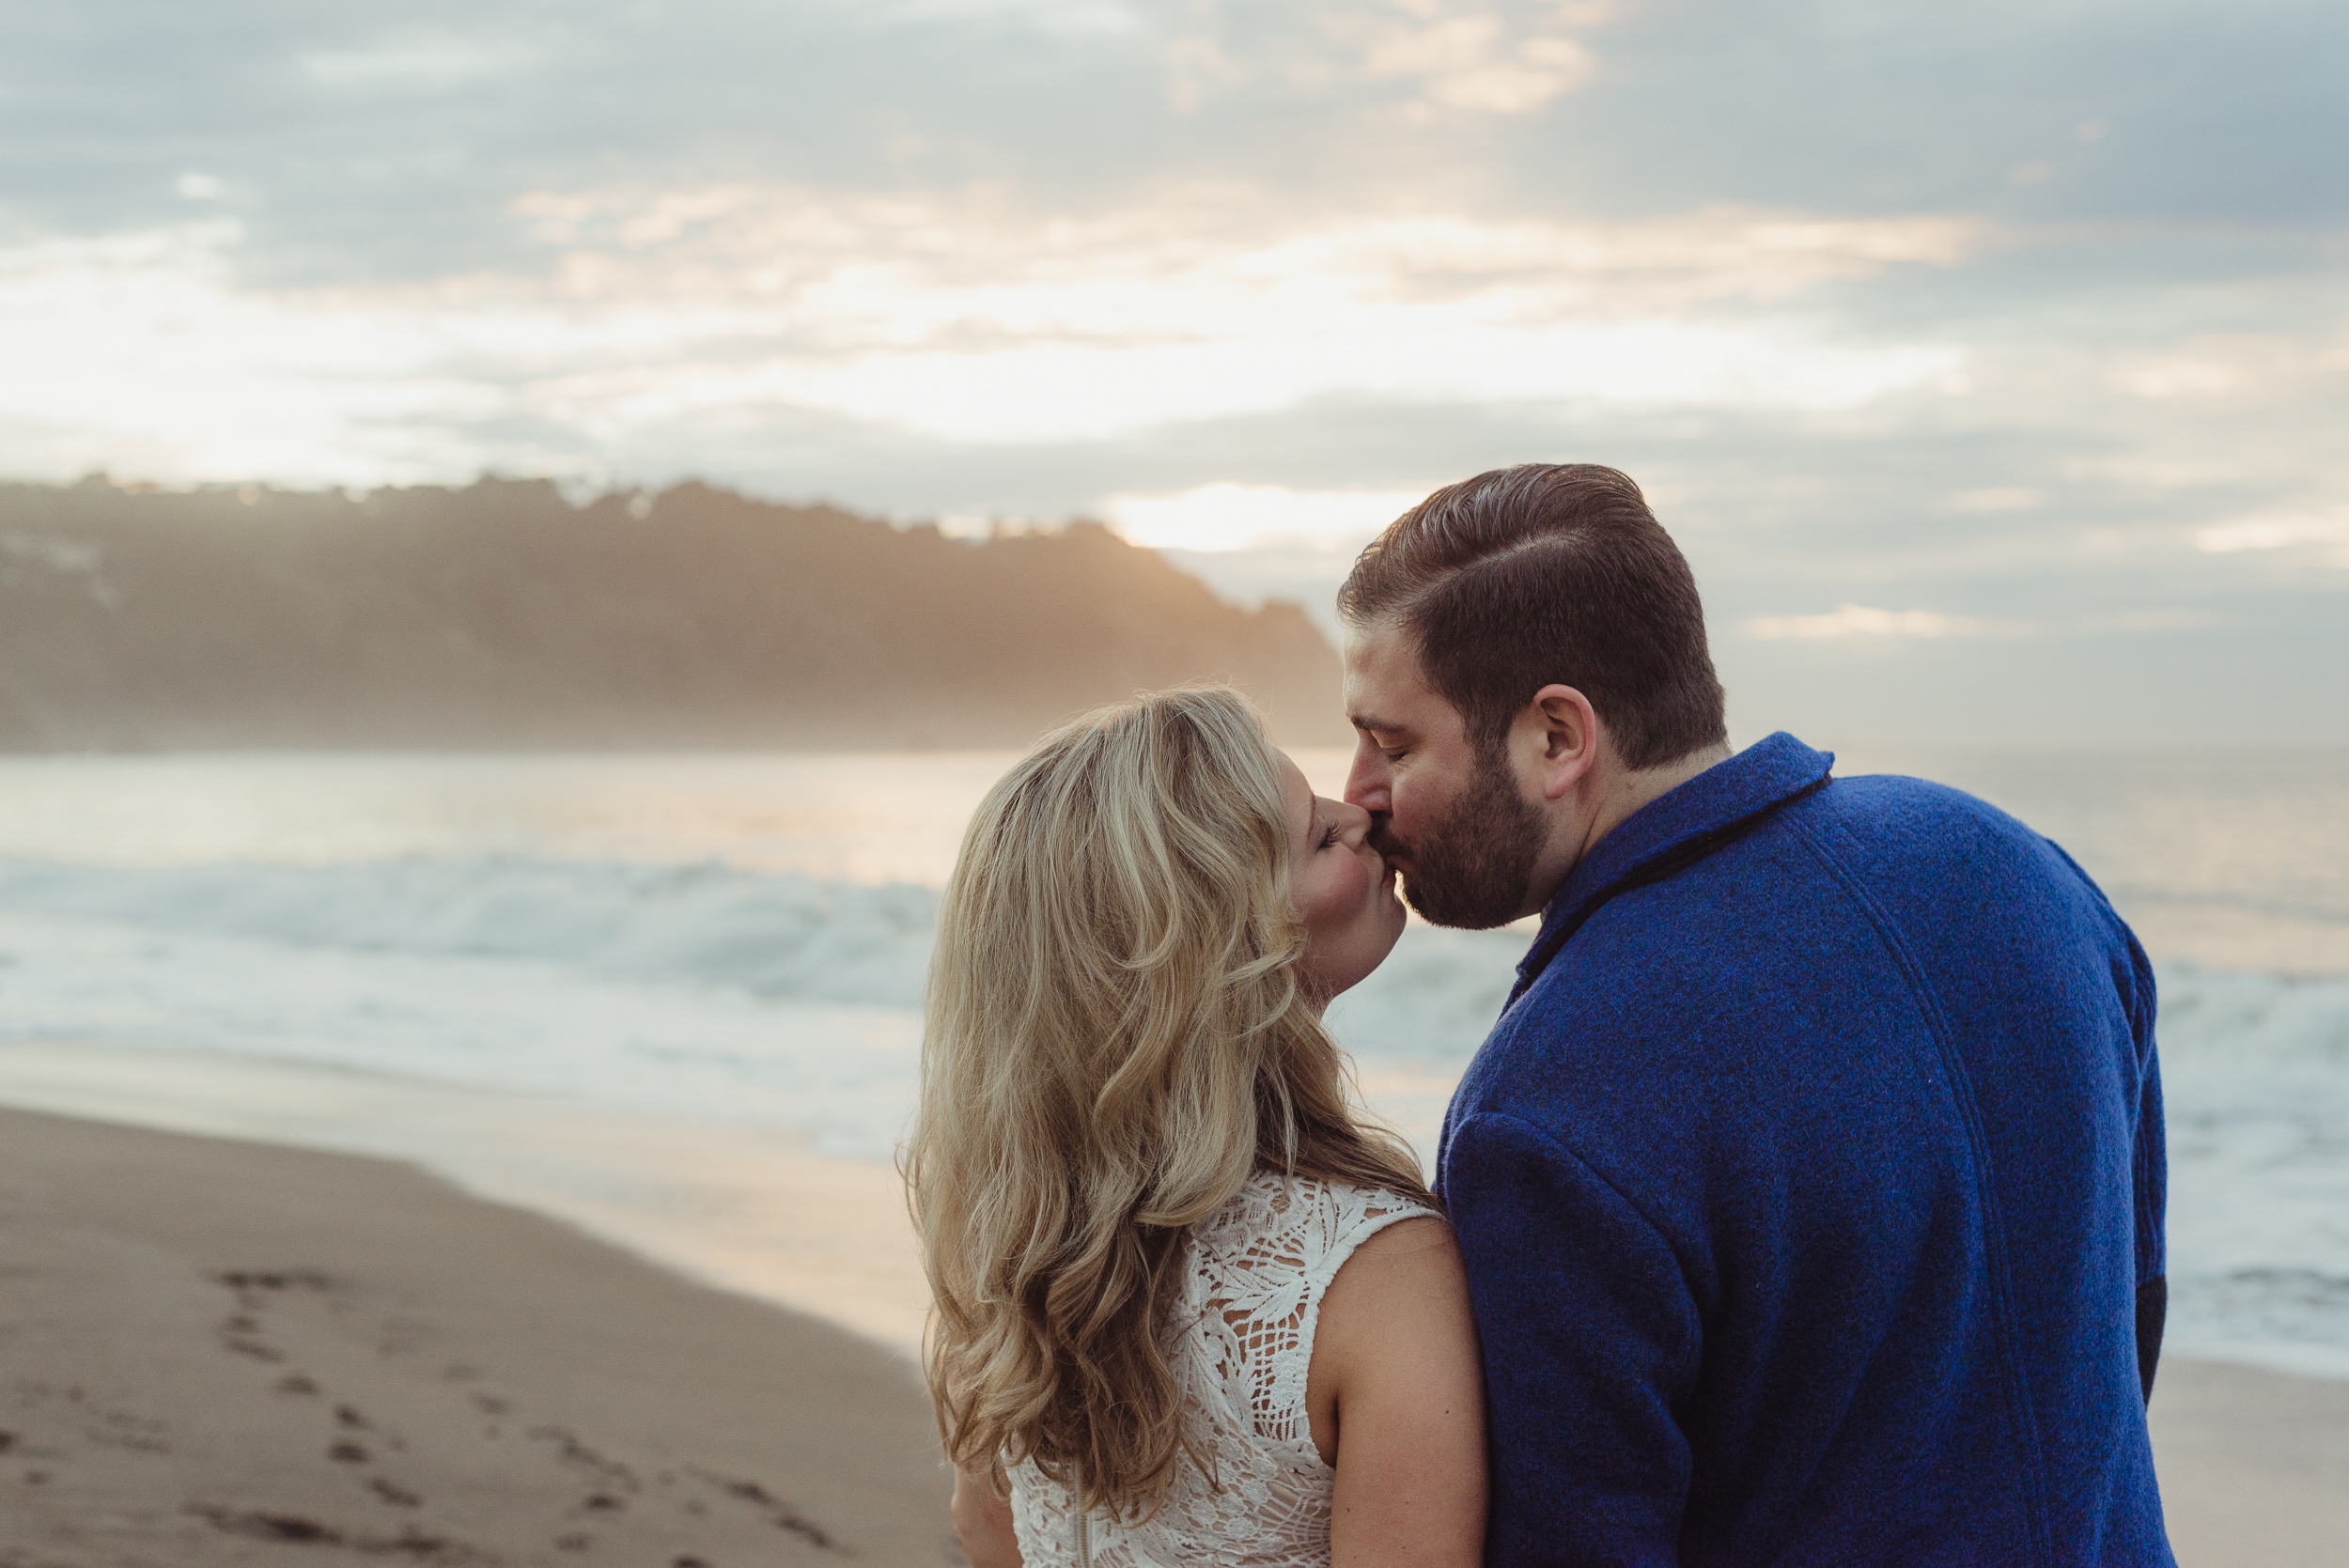 presidio-woodline-baker-beach-SF-engagement-session-vivianchen-100.jpg